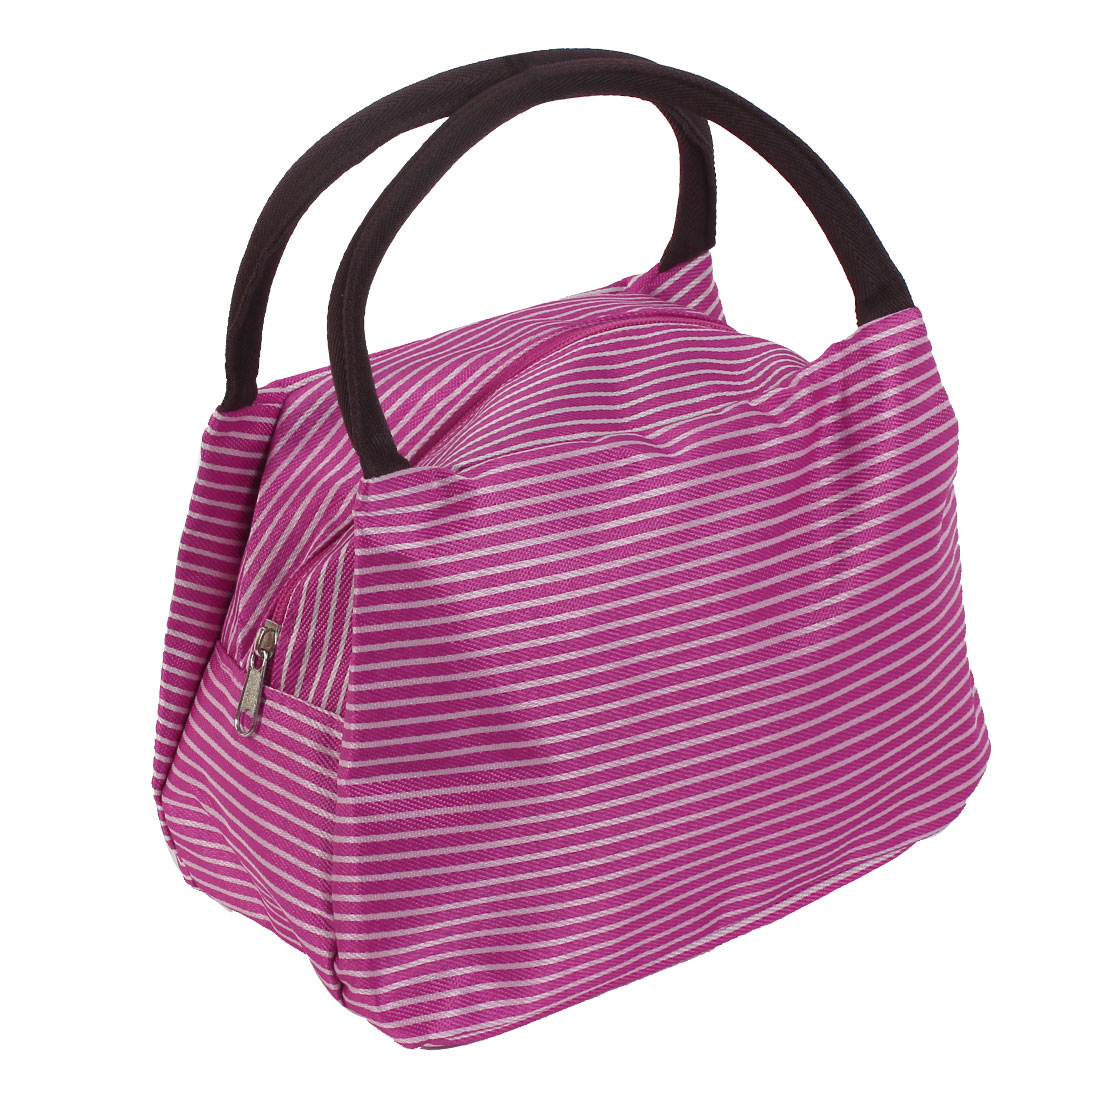 Stripe Pattern Women Makeup Pouch Holder Handbag Cosmetic Bags Fuchsia